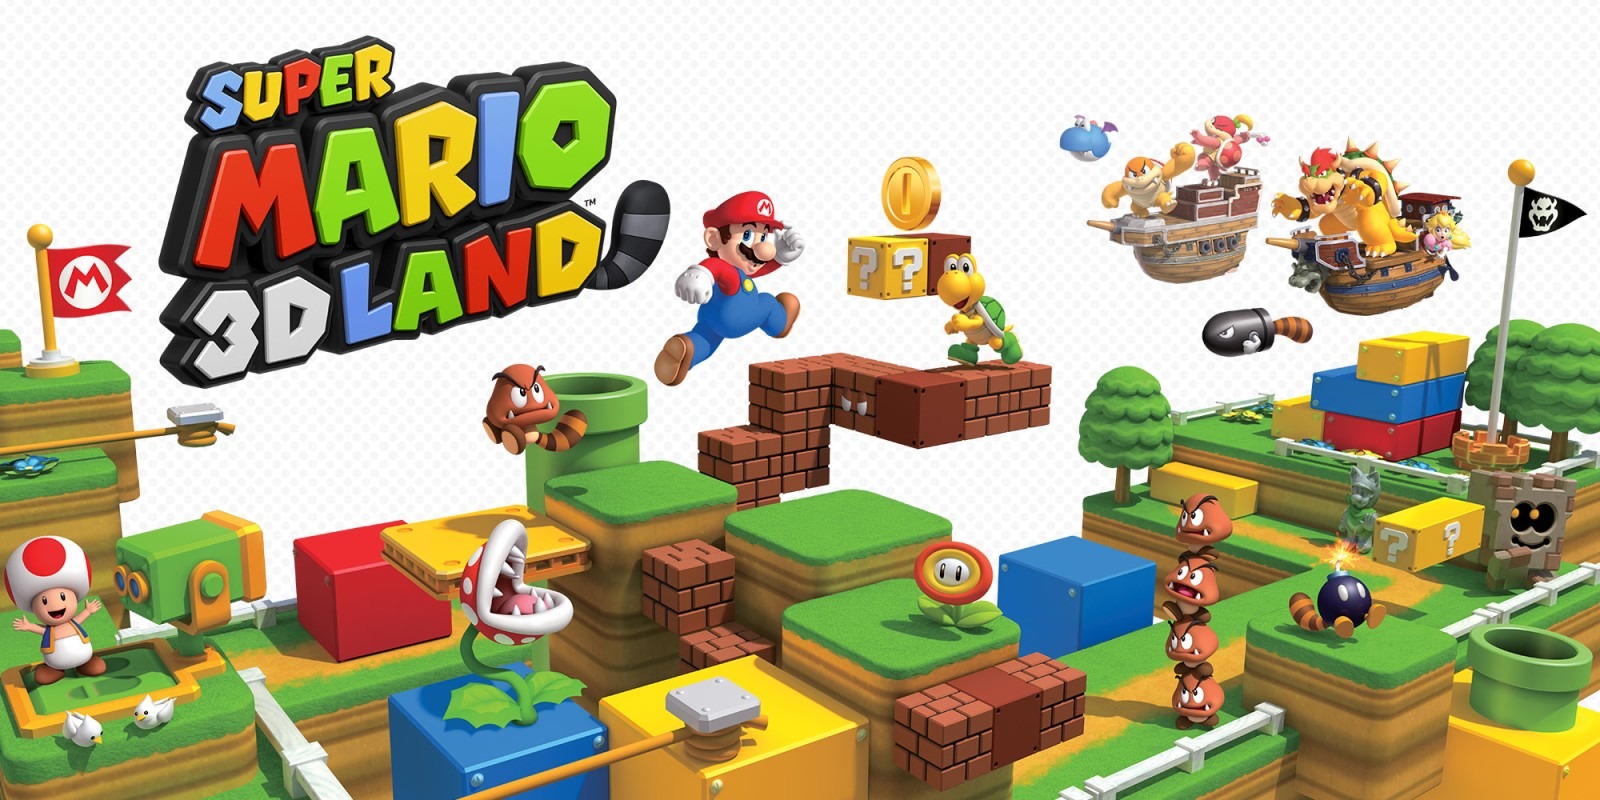 Nintendo 3ds Mario Games : Super mario d land nintendo ds games